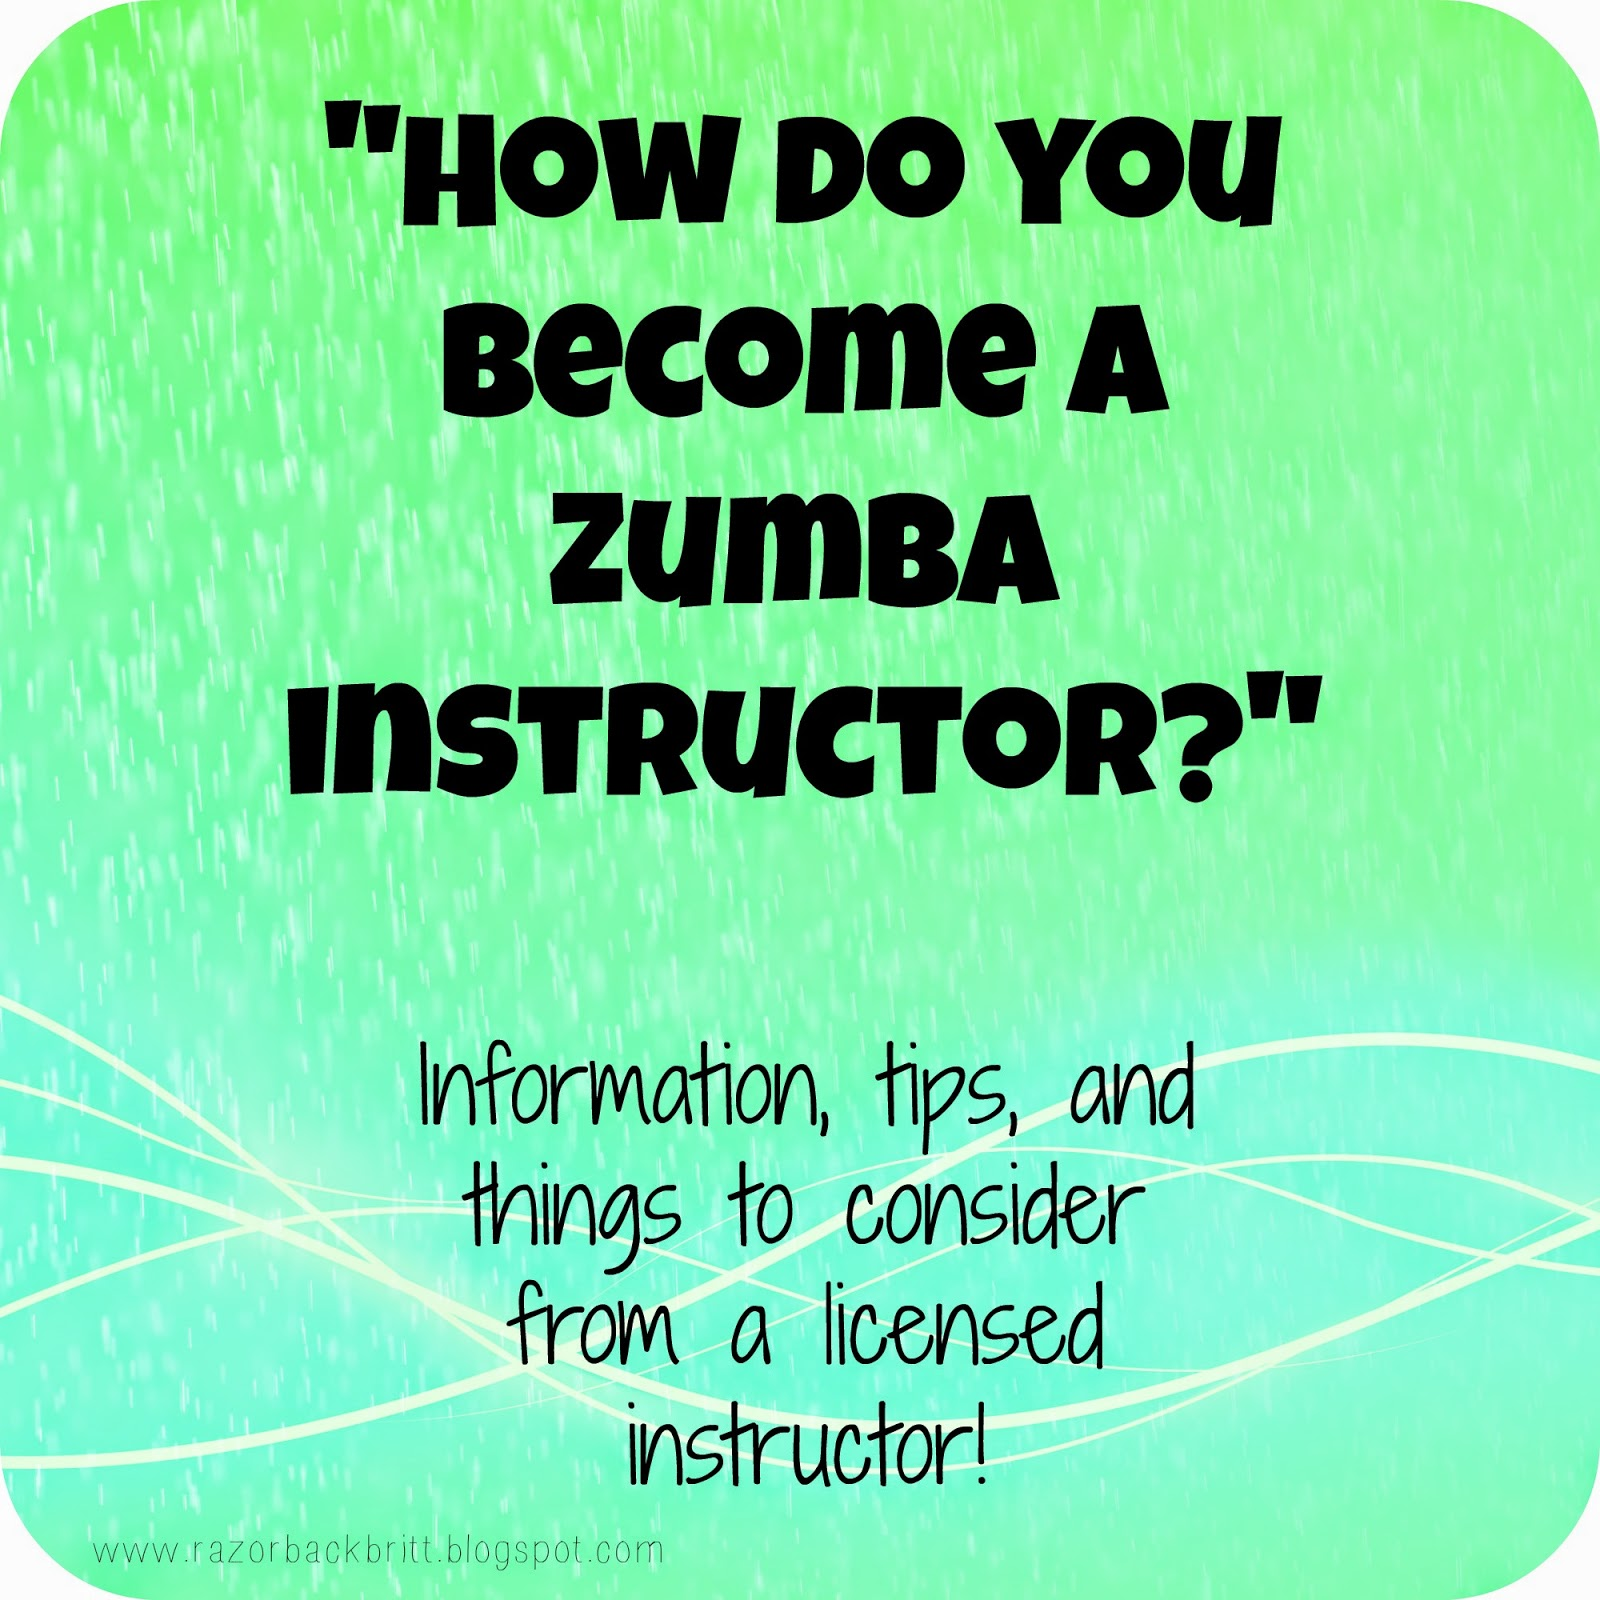 Find out how to become a Zumba instructor here.